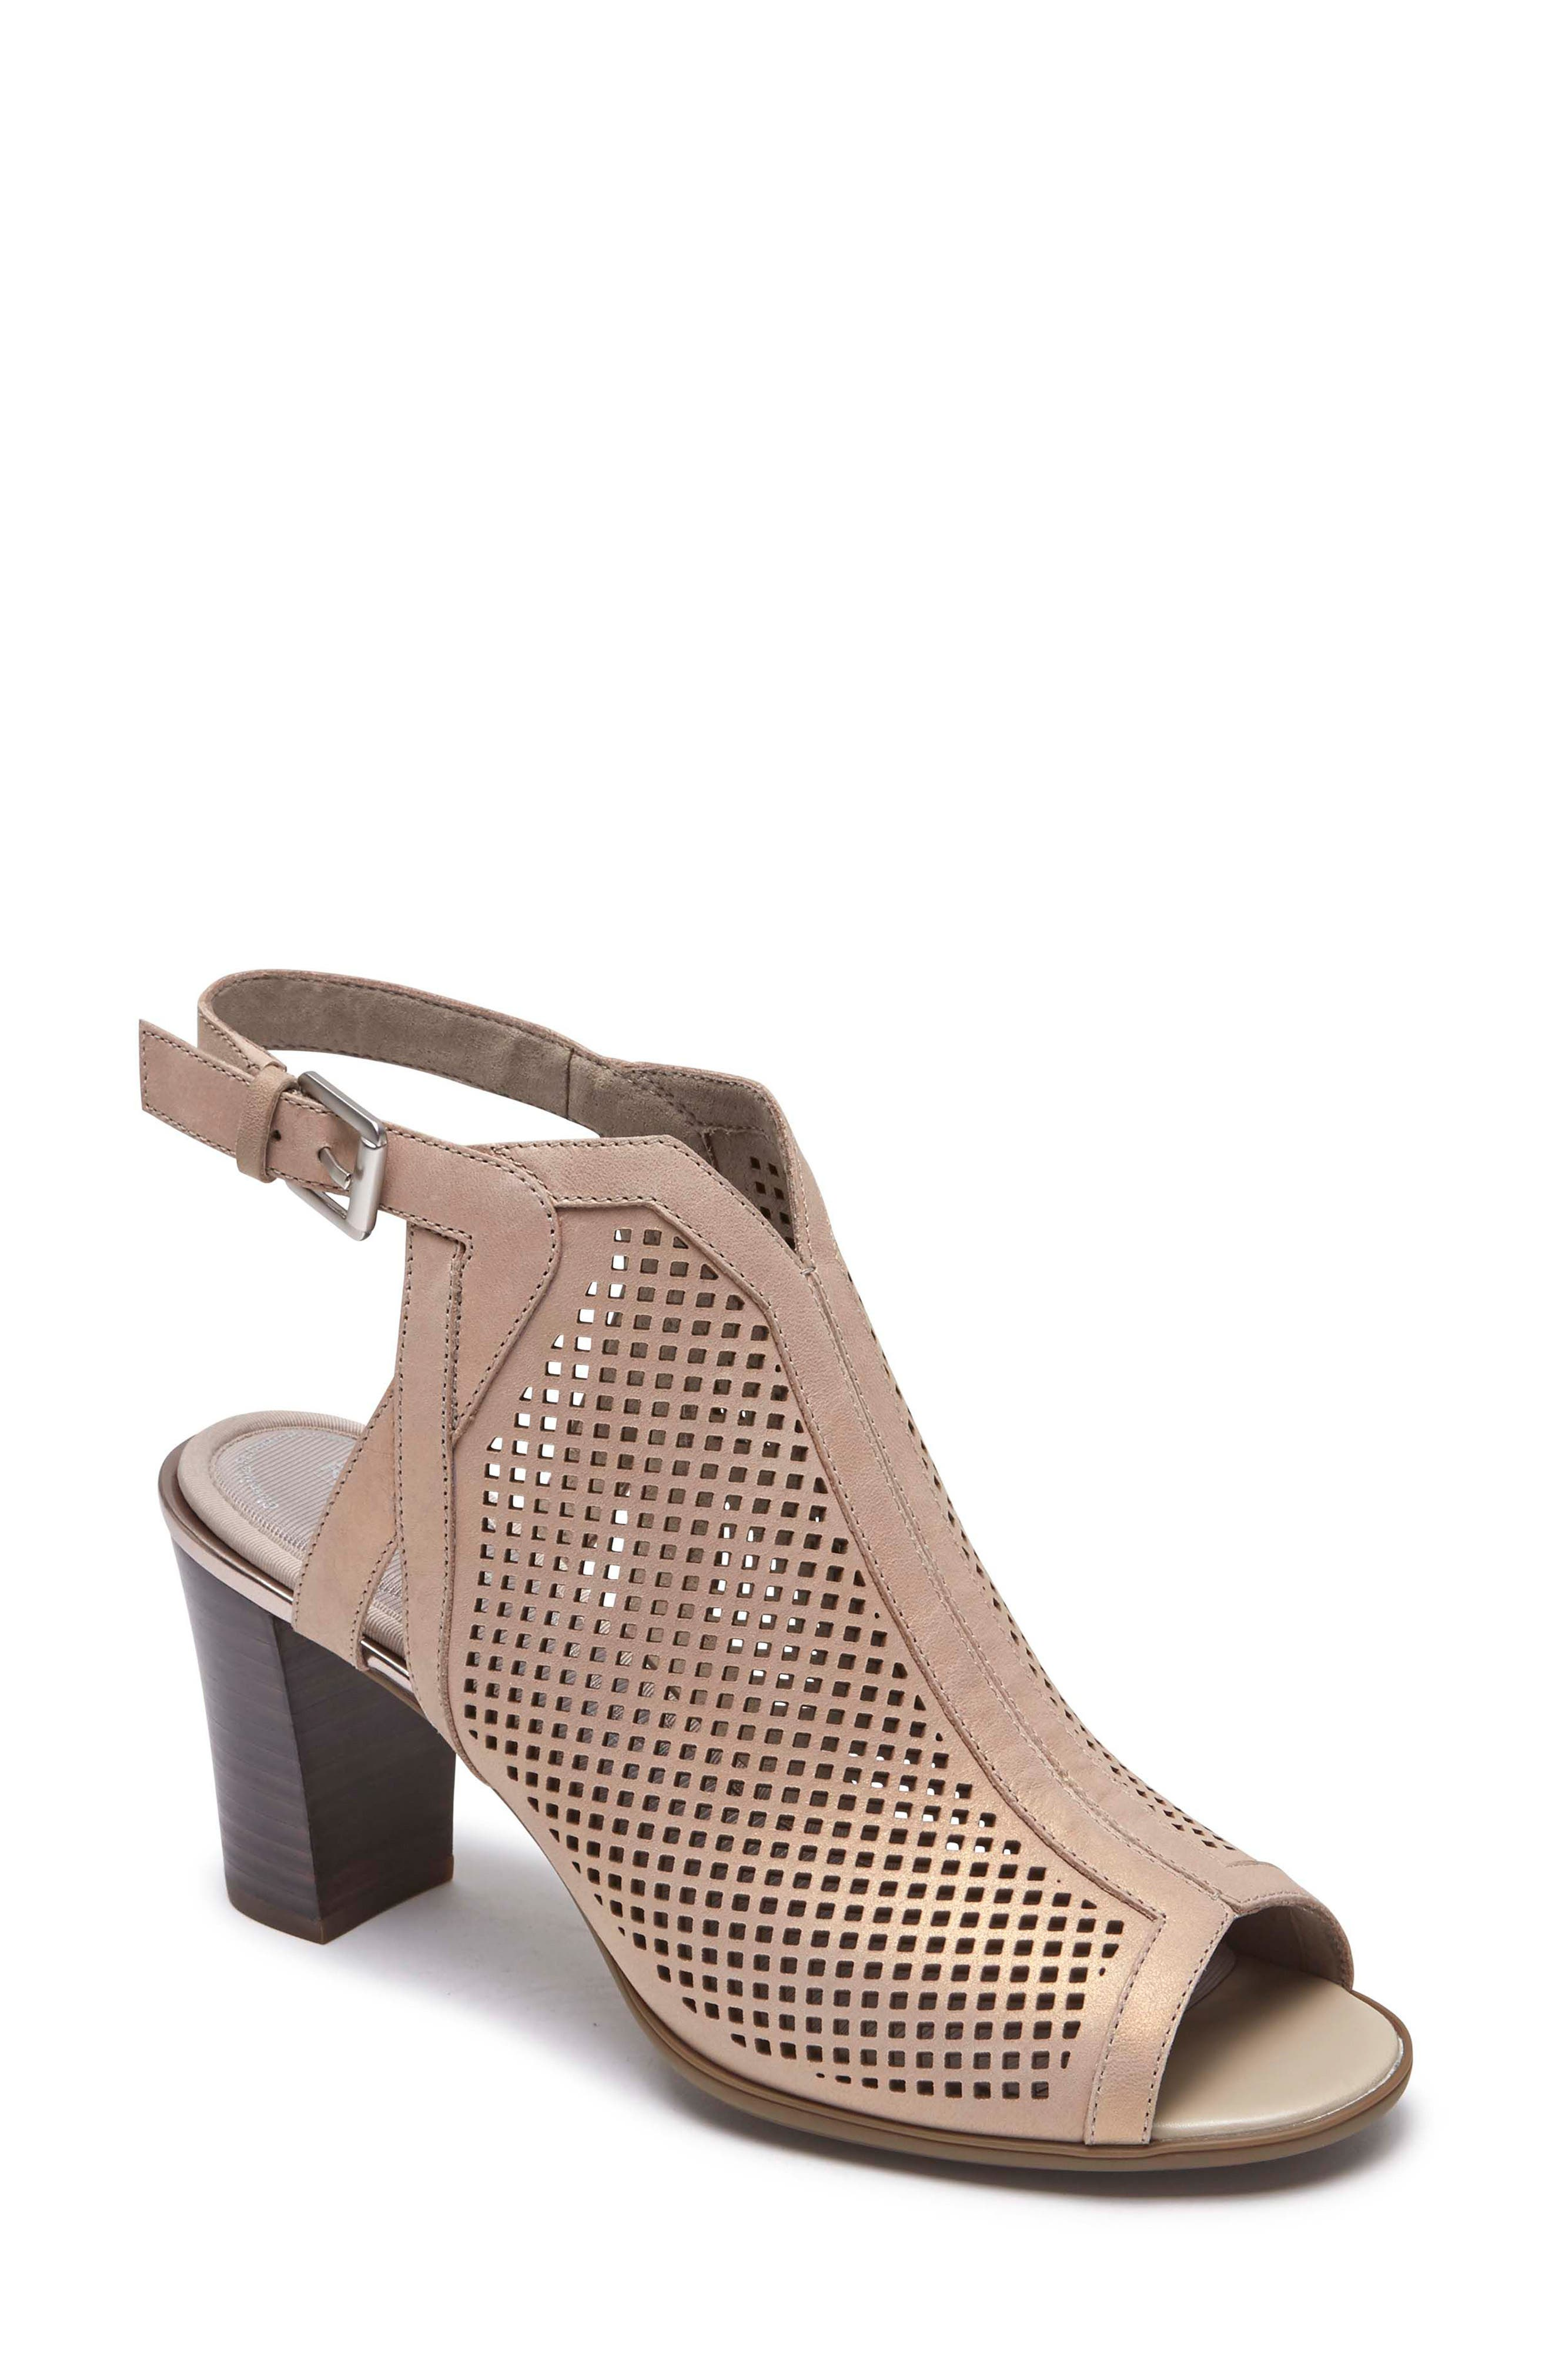 Total Motion Luxe Perforated Sandal,                         Main,                         color, DOVE LEATHER